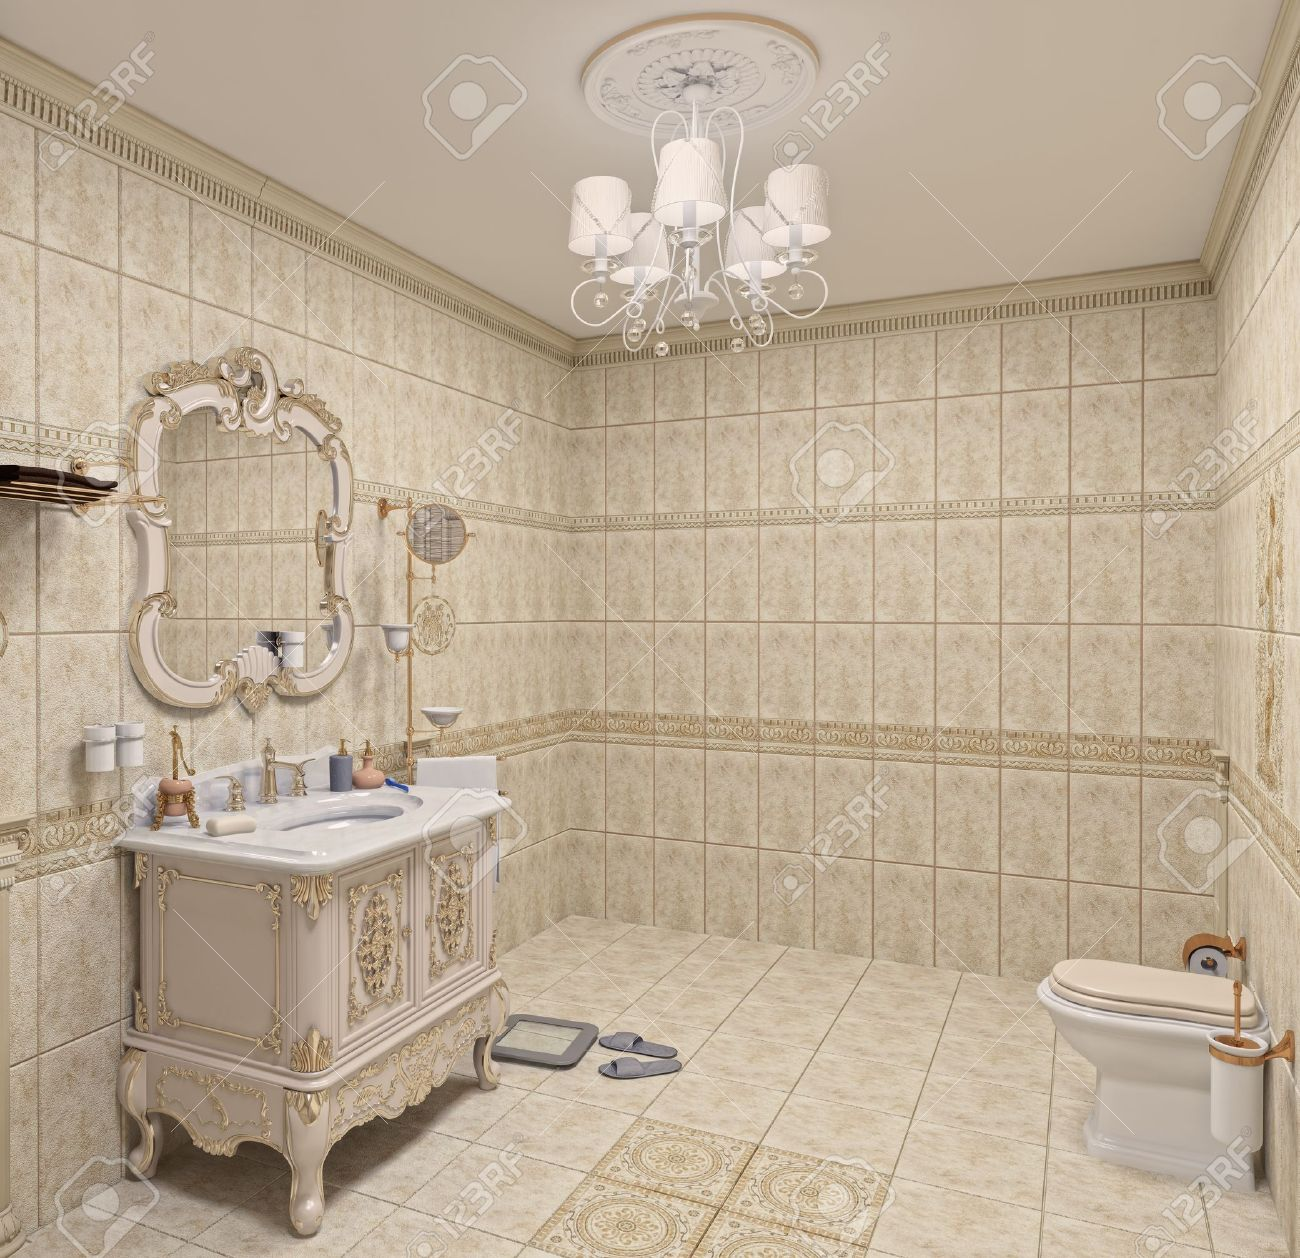 Modern Bathroom Interior With Tiles And Mirror (3D Rendering) Stock ...